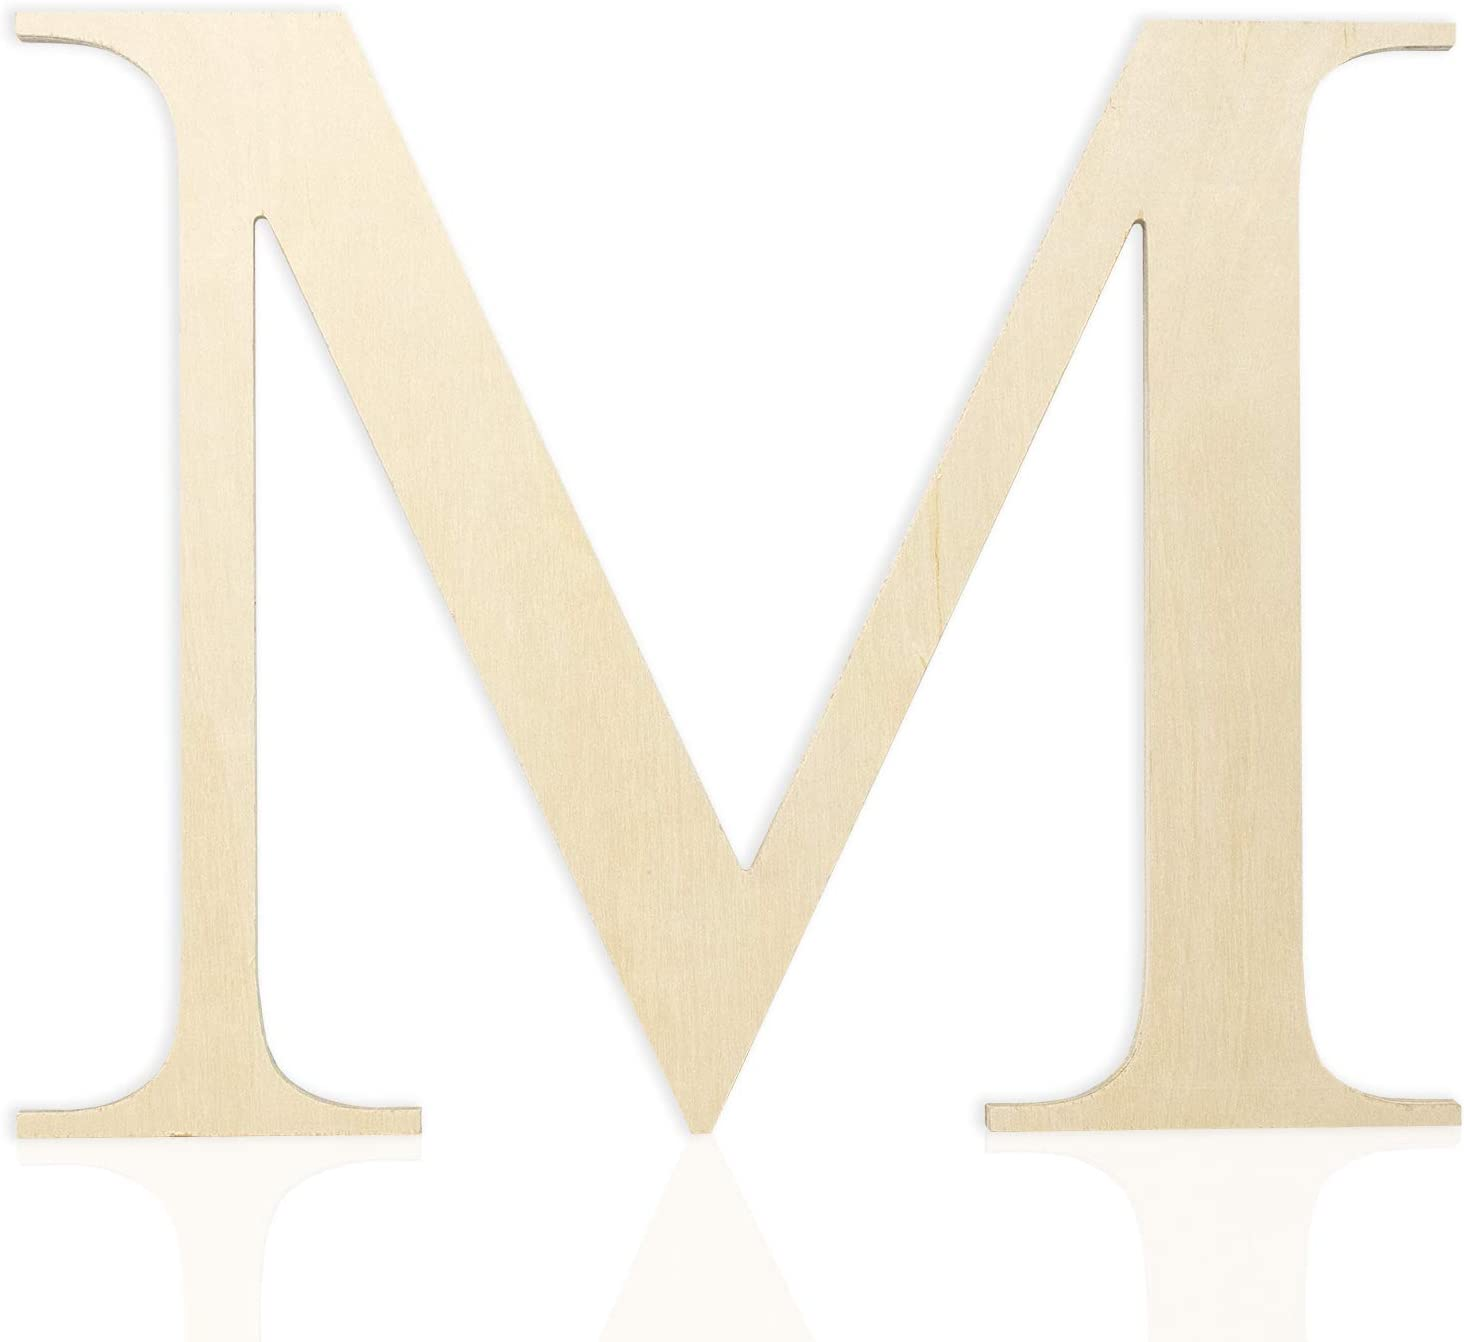 Wooden Letters 12 Inch (Letter M) Unfinished Wood Letters for Wall Décor, Crafts and Weddings. Wall Letter Signs for Home Decoration Painting with Full Alphabet Range Available - 0.5 Inch Thickness